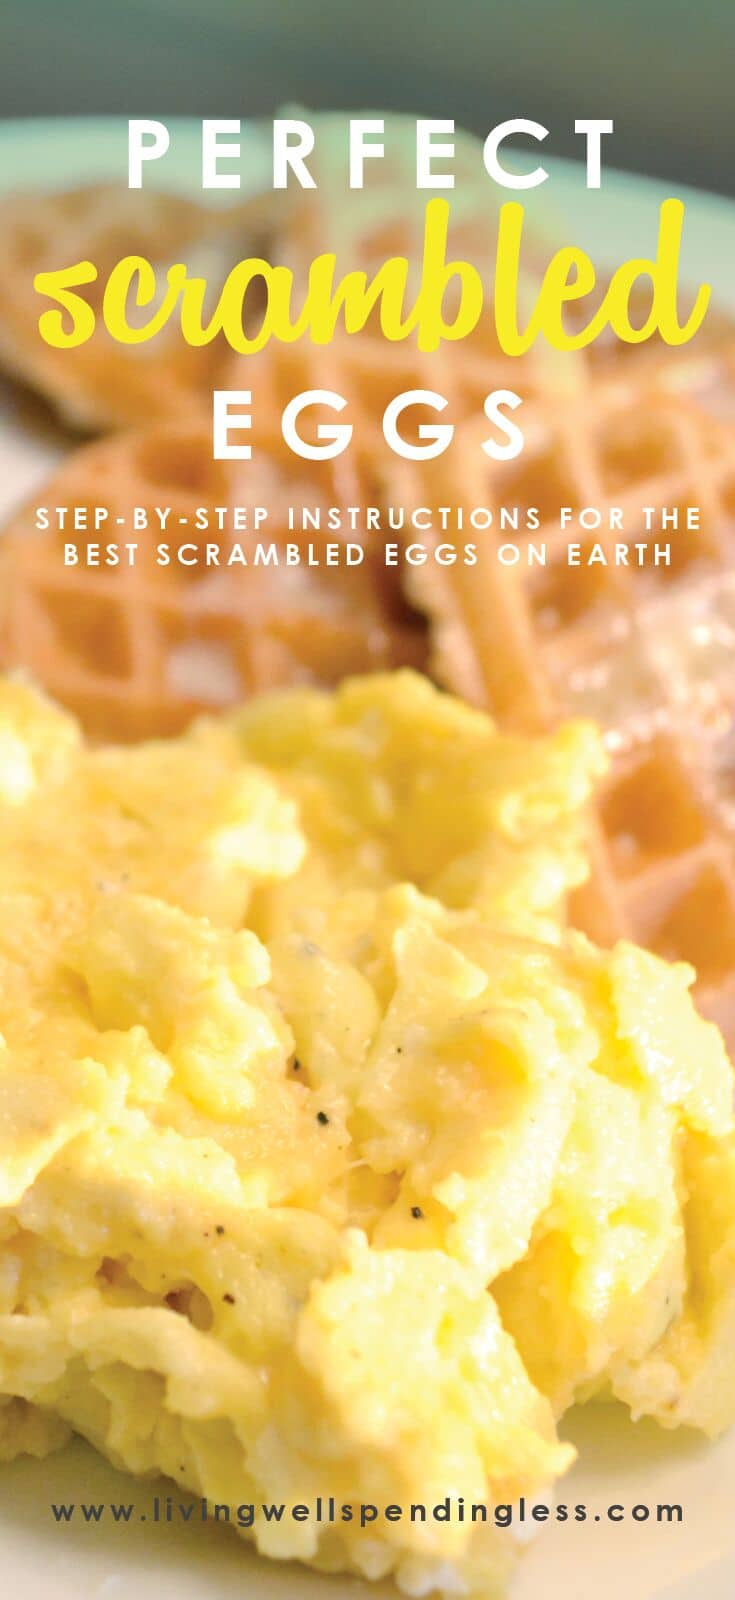 Perfect Scrambled Eggs: Step-by-step instructions for the best scrambled eggs on earth